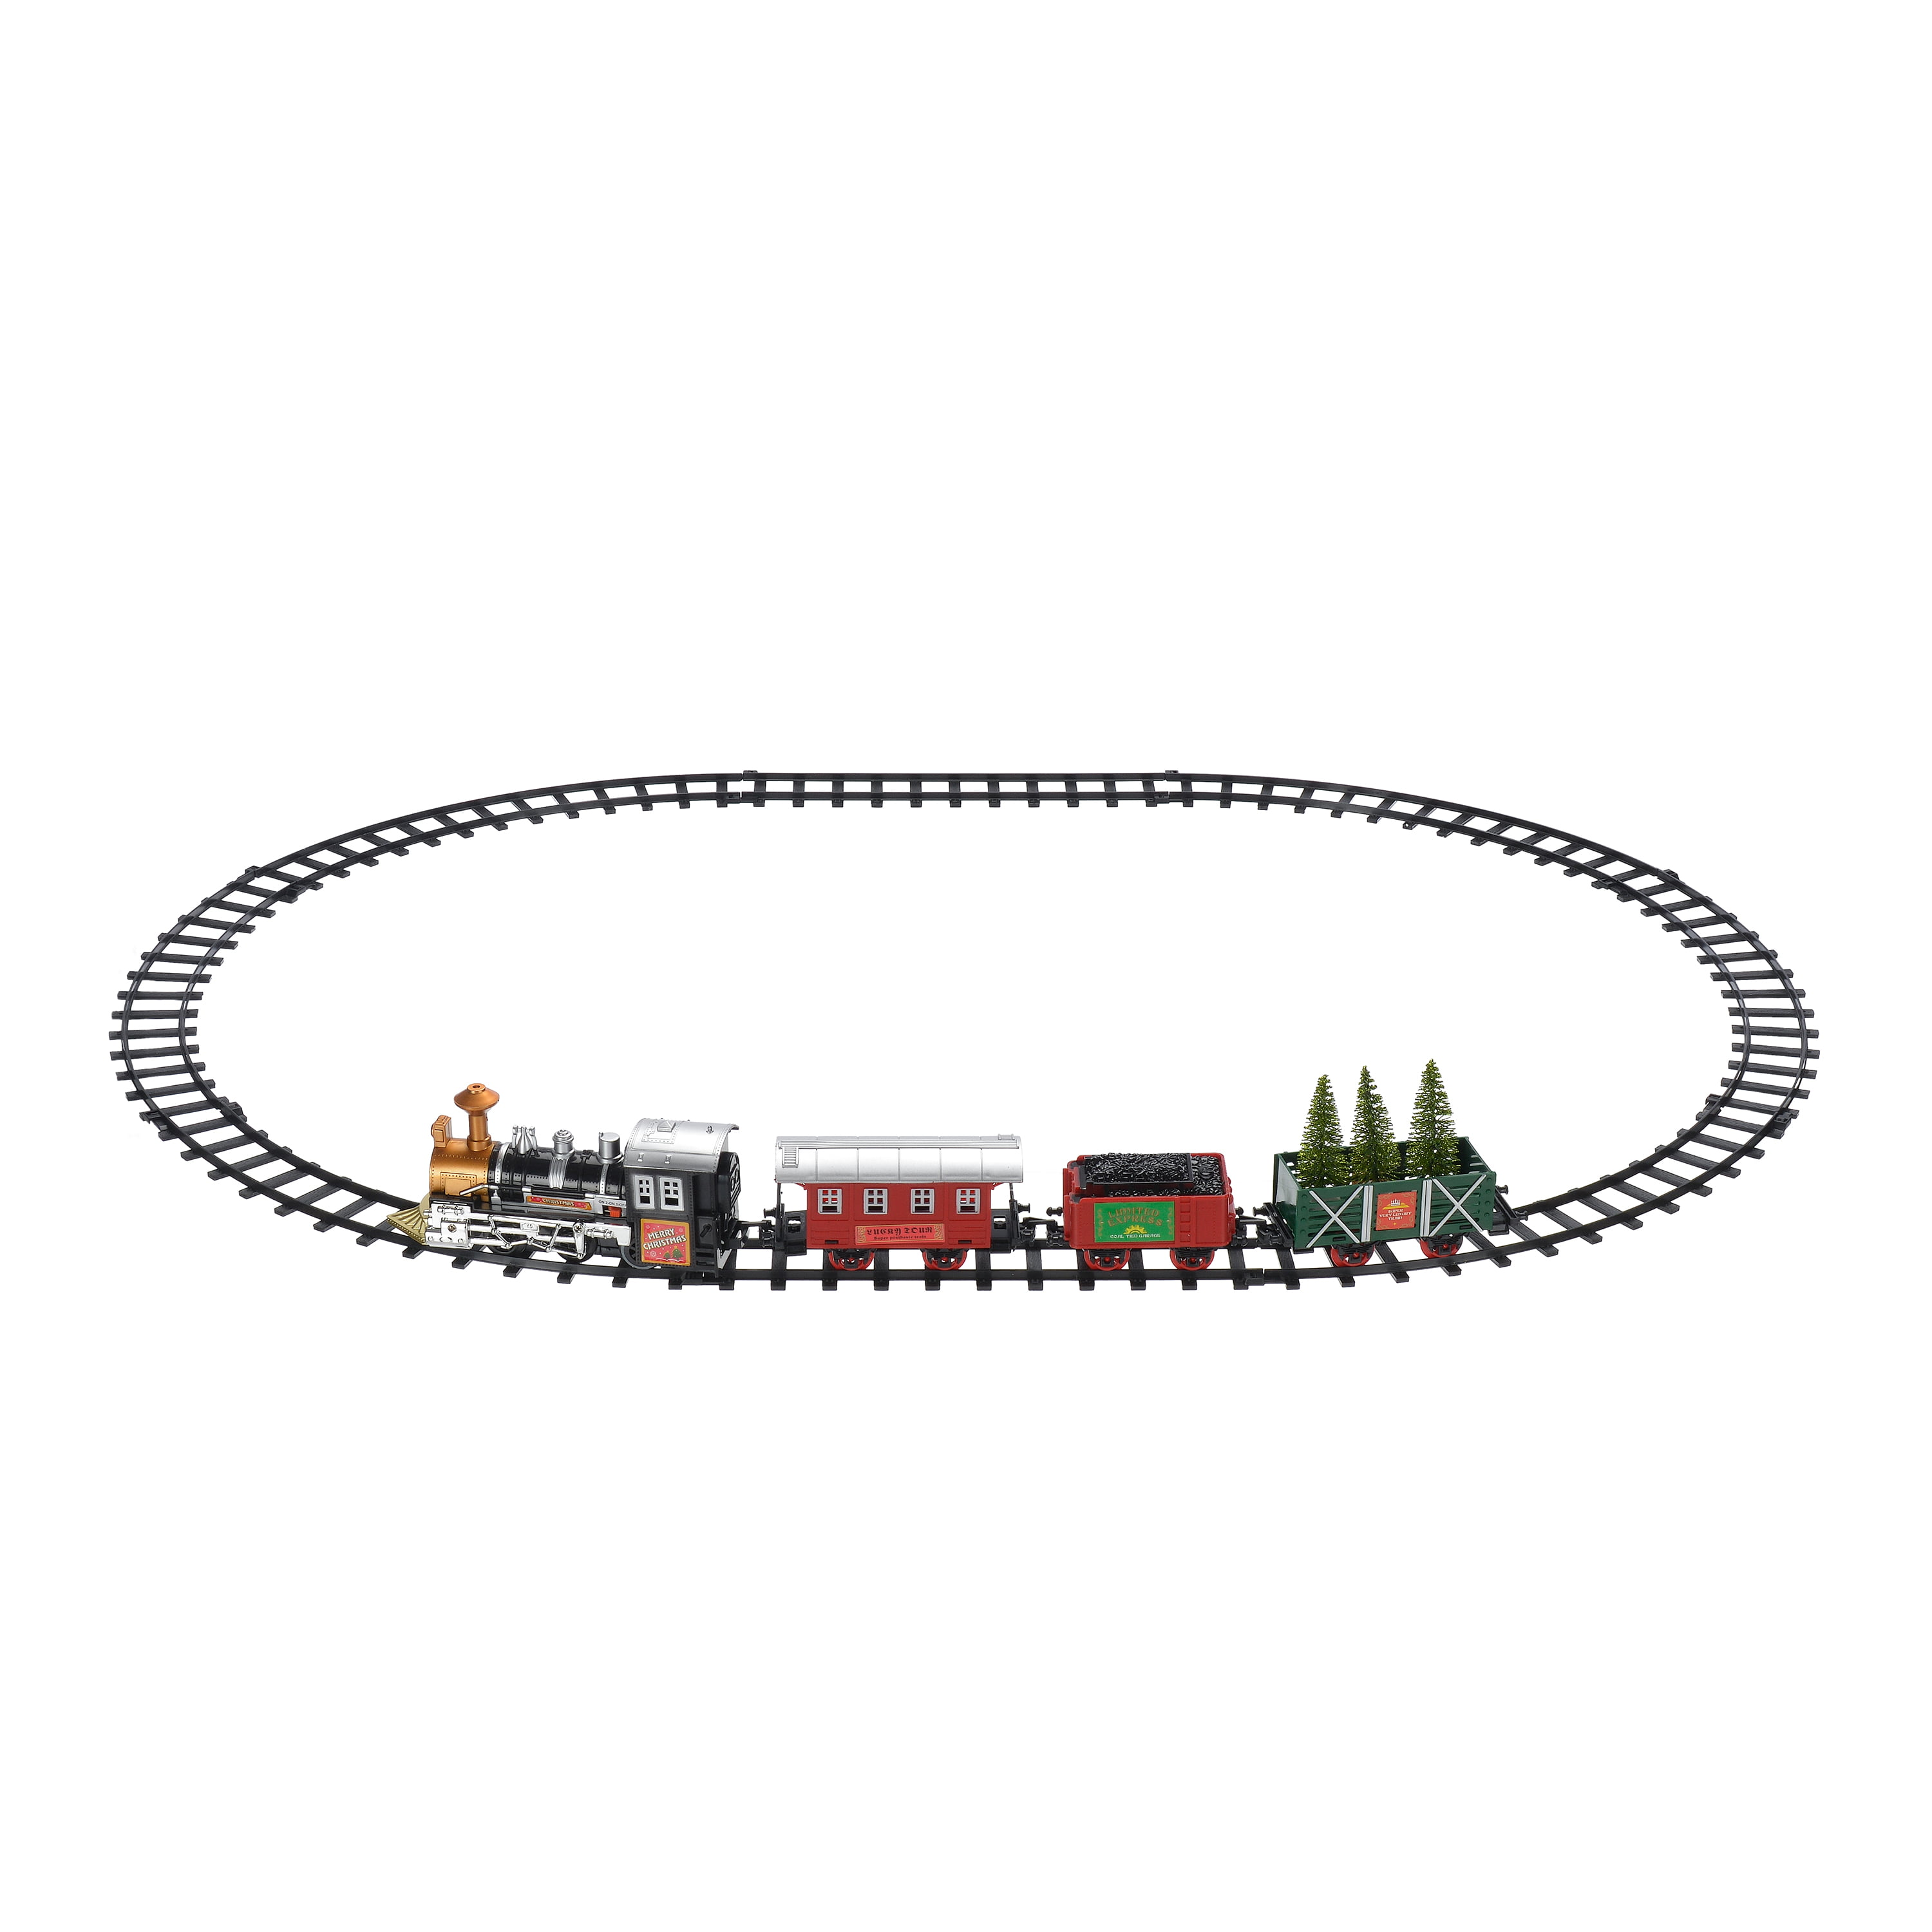 Holiday Time Battery Powered Train Set Christmas Decoration - Walmart.com